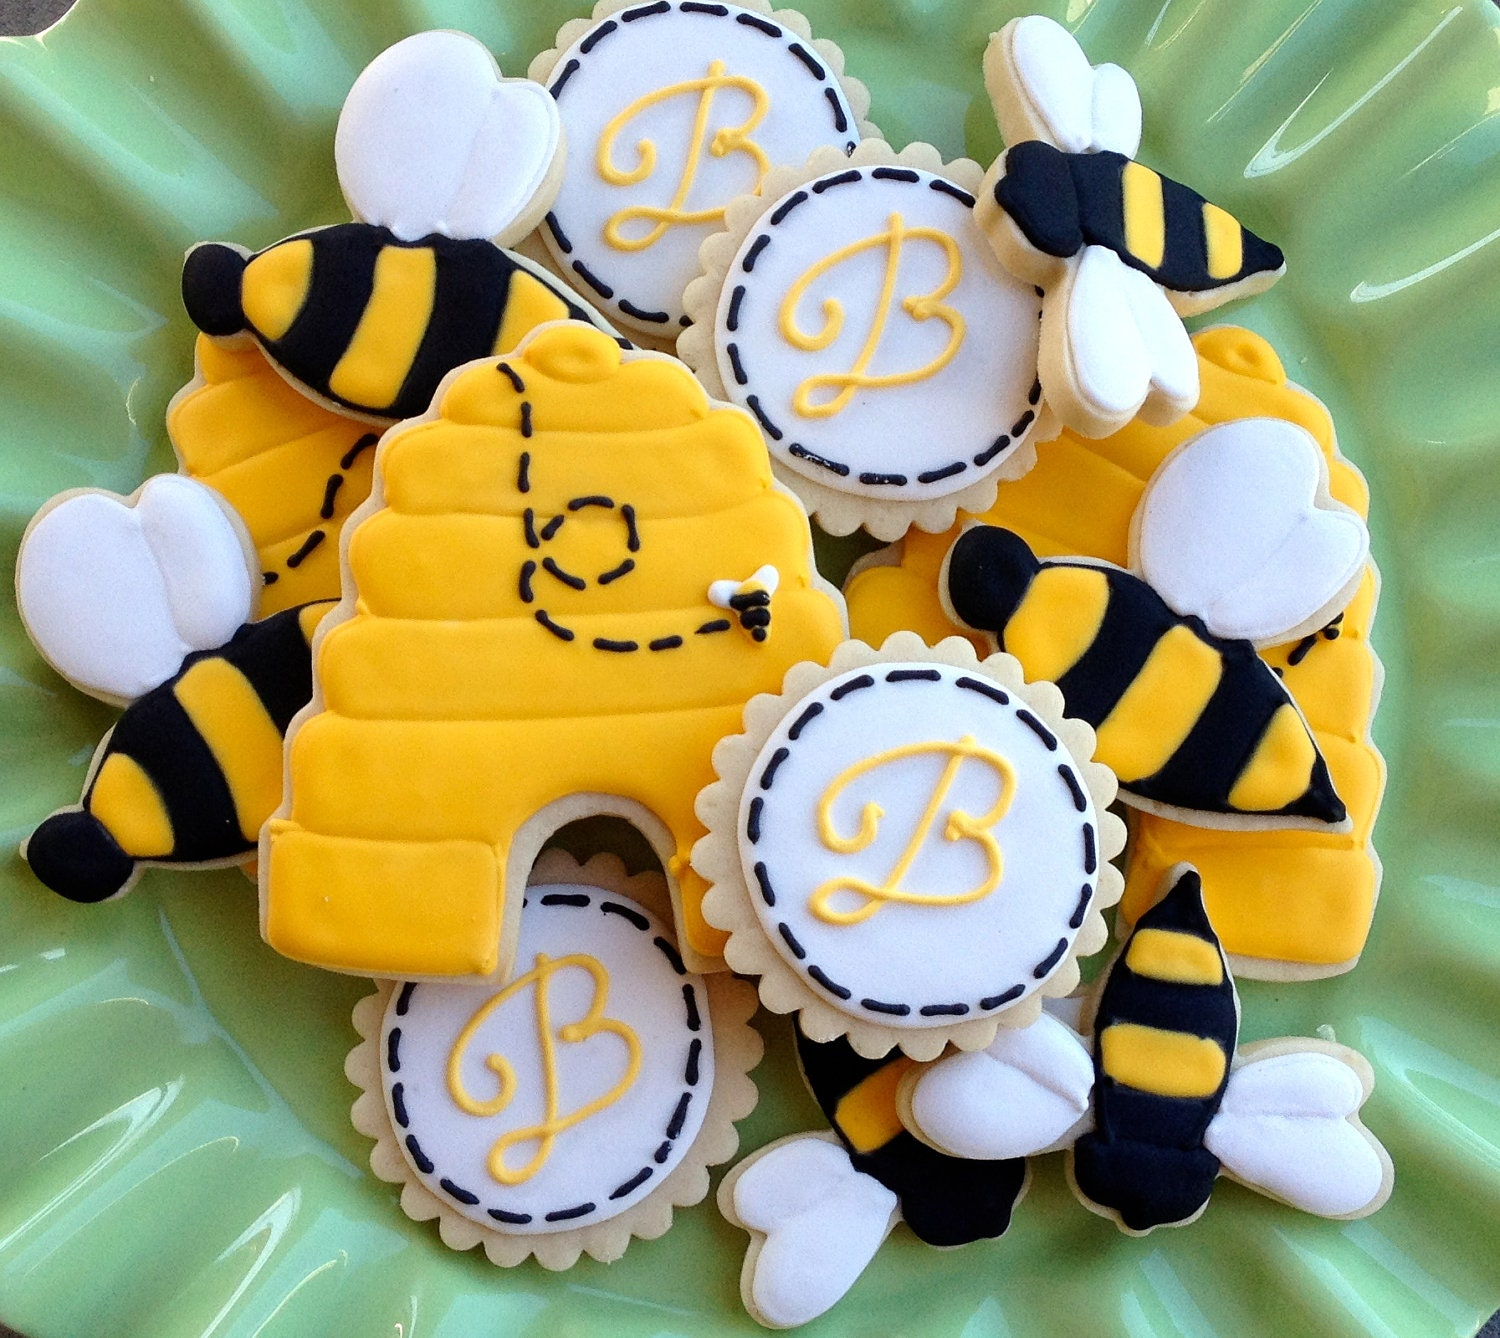 Bumble Bee Sugar Cookies by NotBettyCookies on Etsy